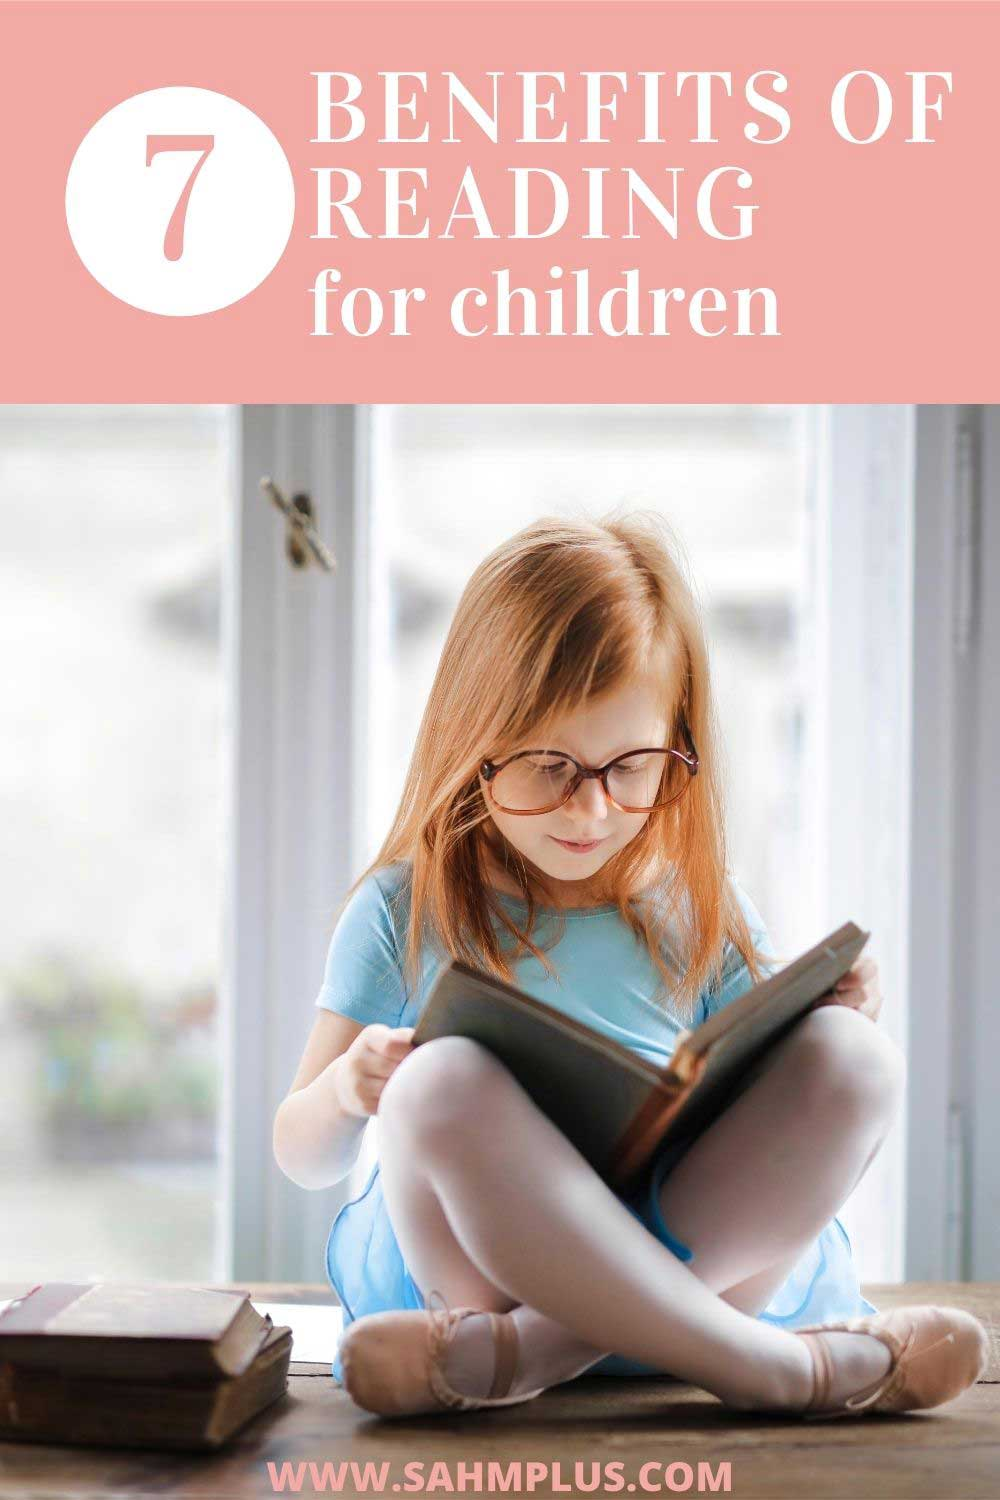 7 Benefits of reading for children.  Stress relief is just one reward of reading for kids. Why do children need books?